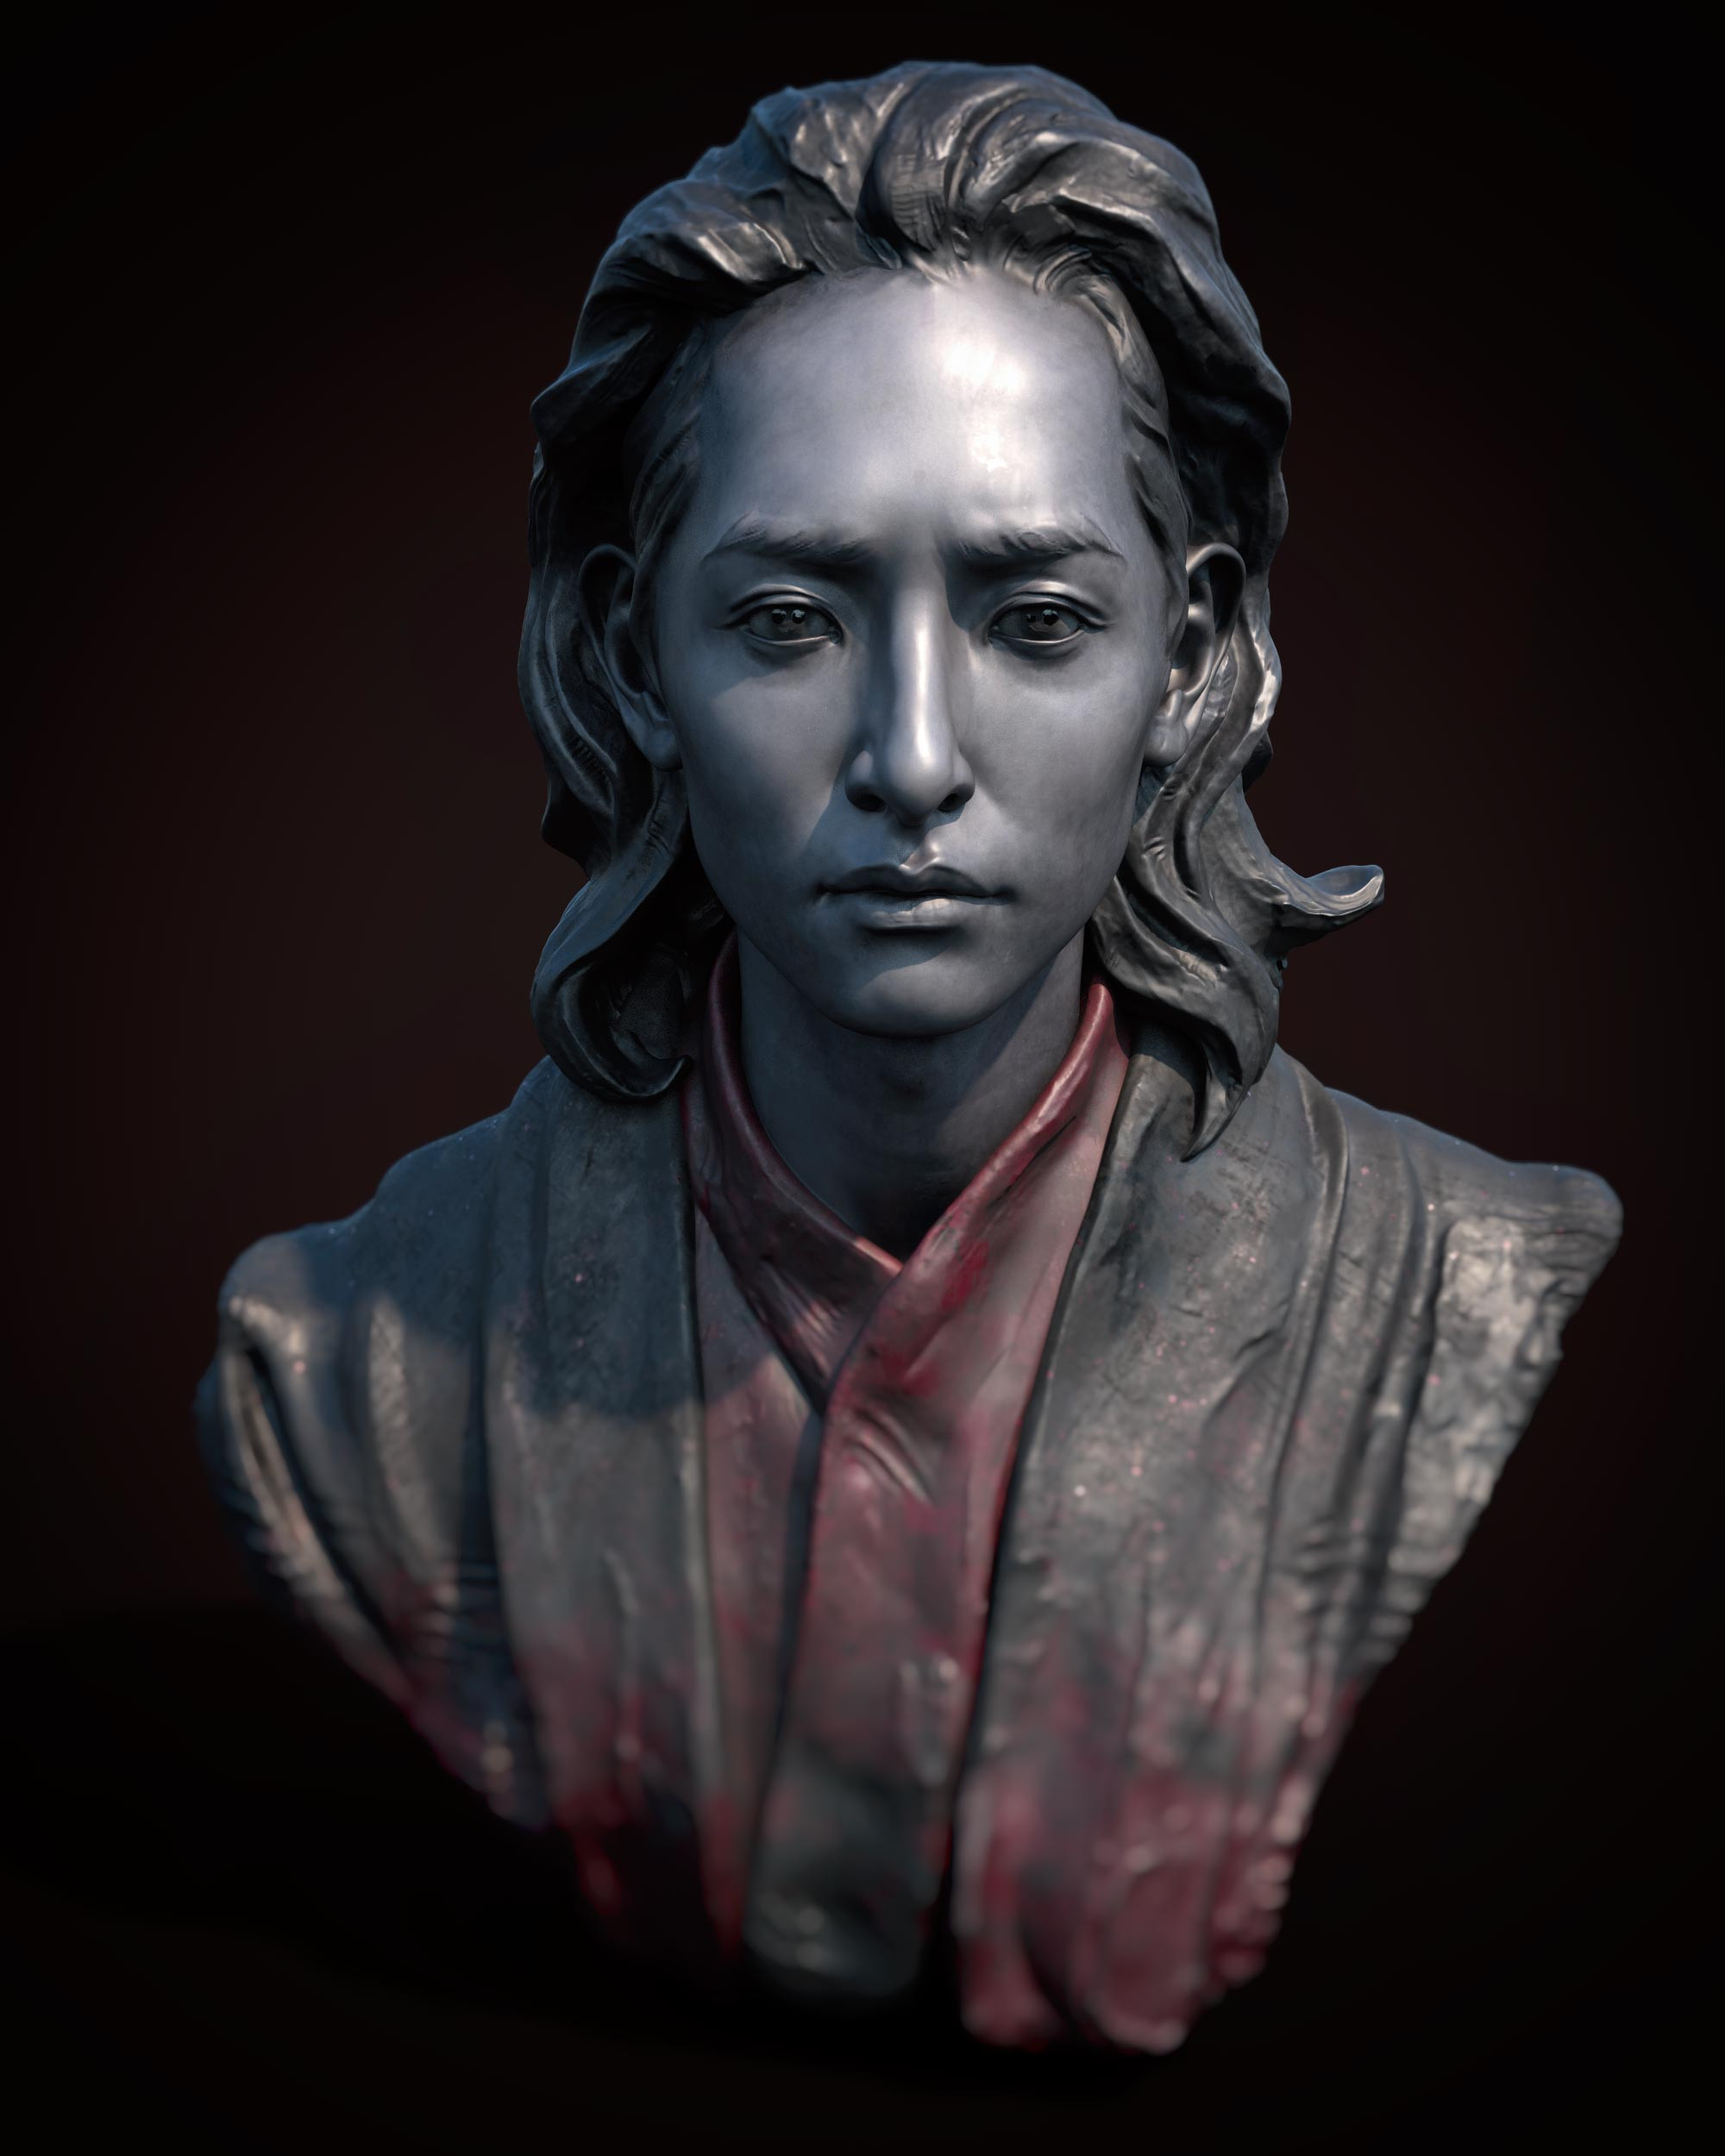 Gwi - this is a study based on Gwi the Vampire portrayed by 이수혁 in a Korean Drama 'The Scholar Who Walks the Night'. Color done in Substance Painter